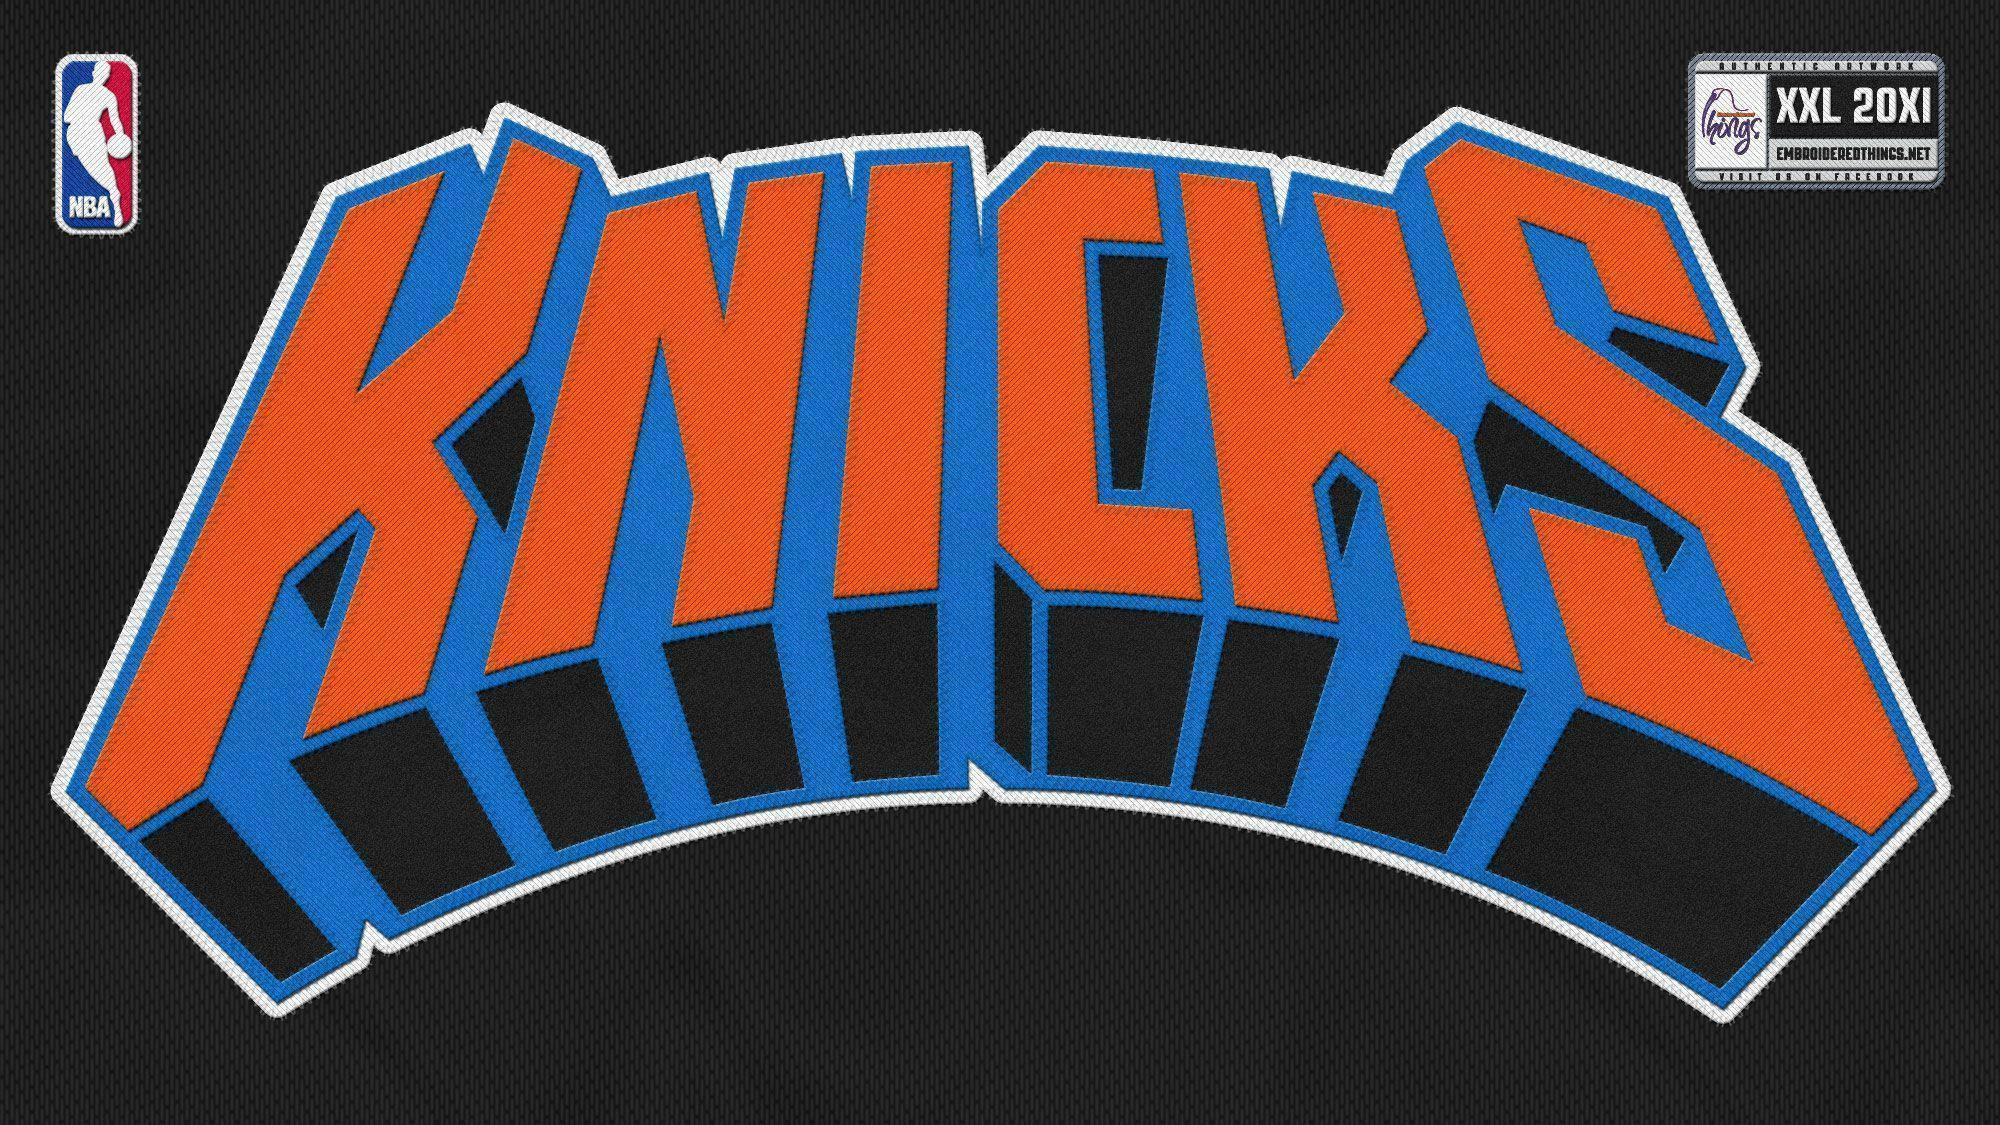 New York Knicks Wallpapers - Wallpaper Cave